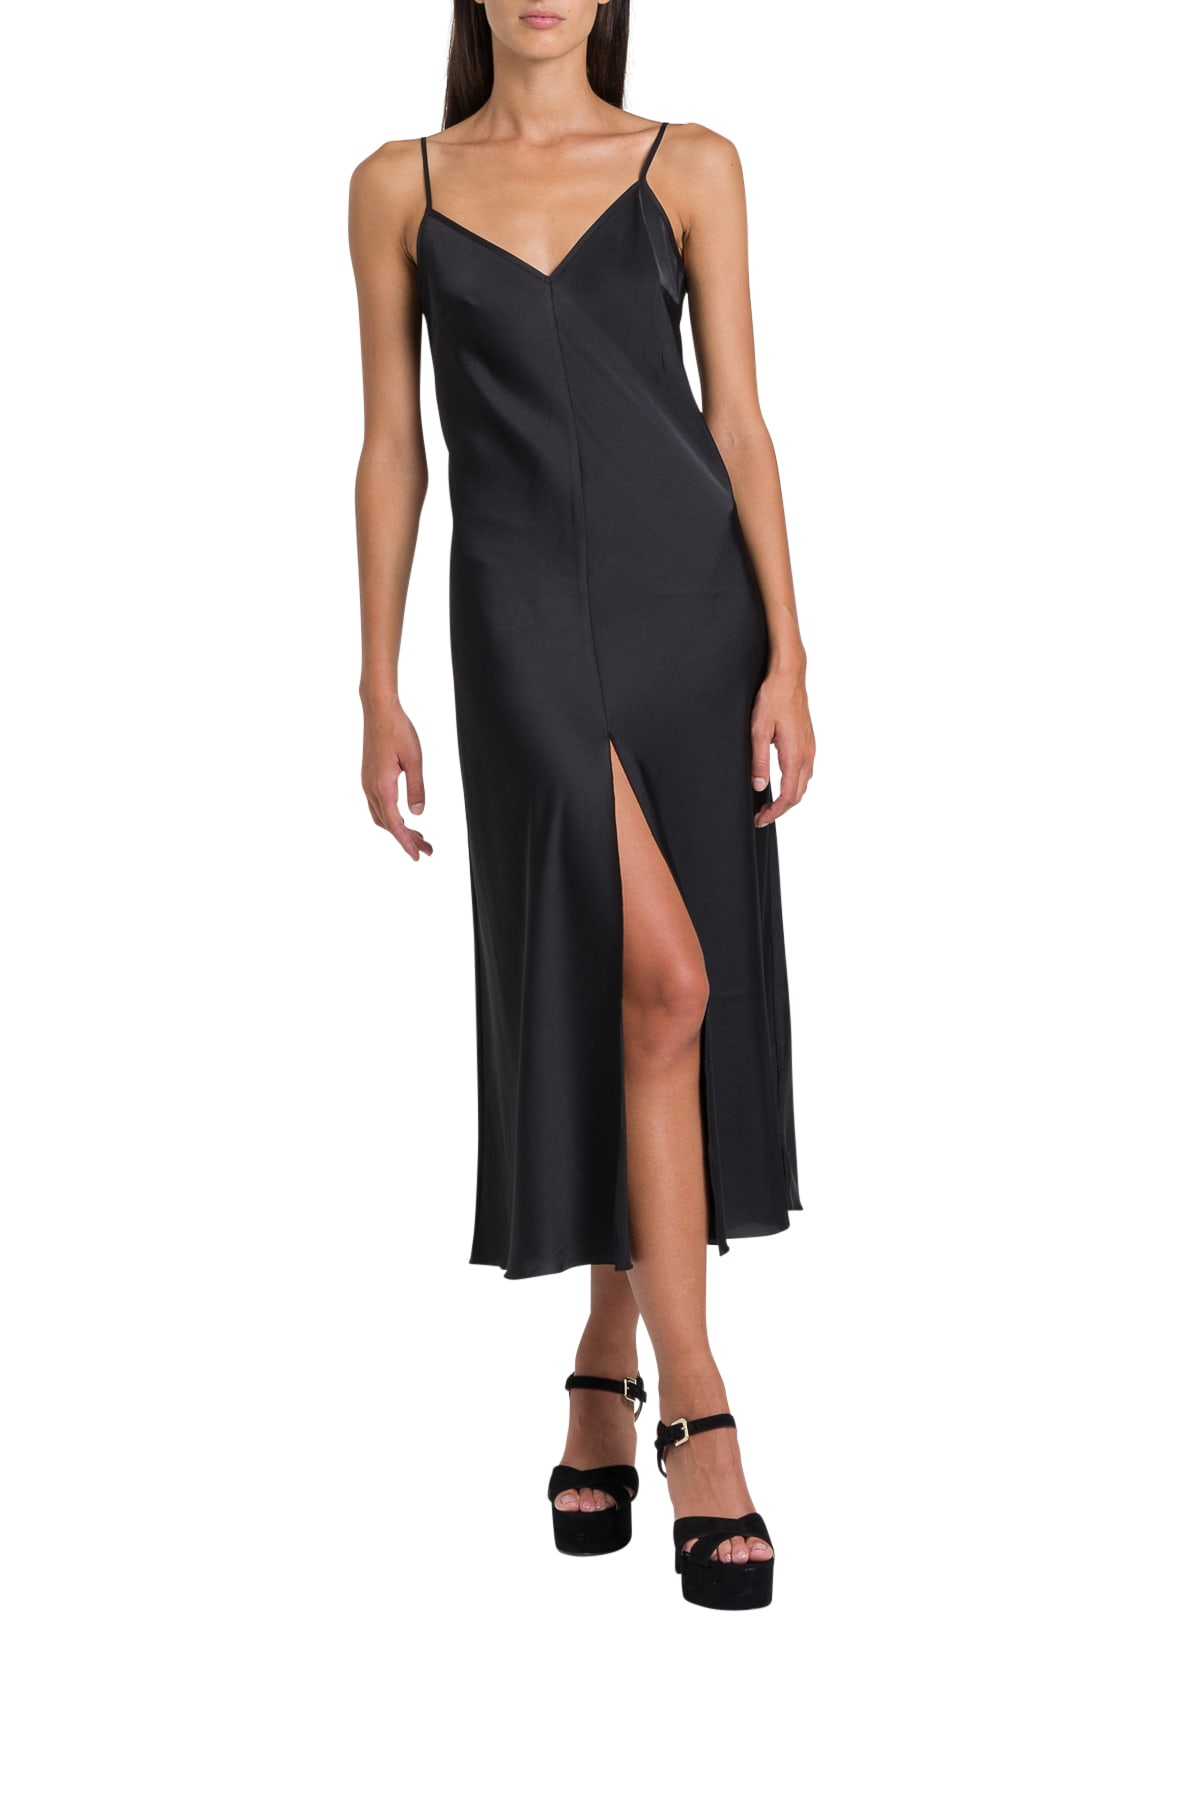 Rotate by Birger Christensen Slip Dress